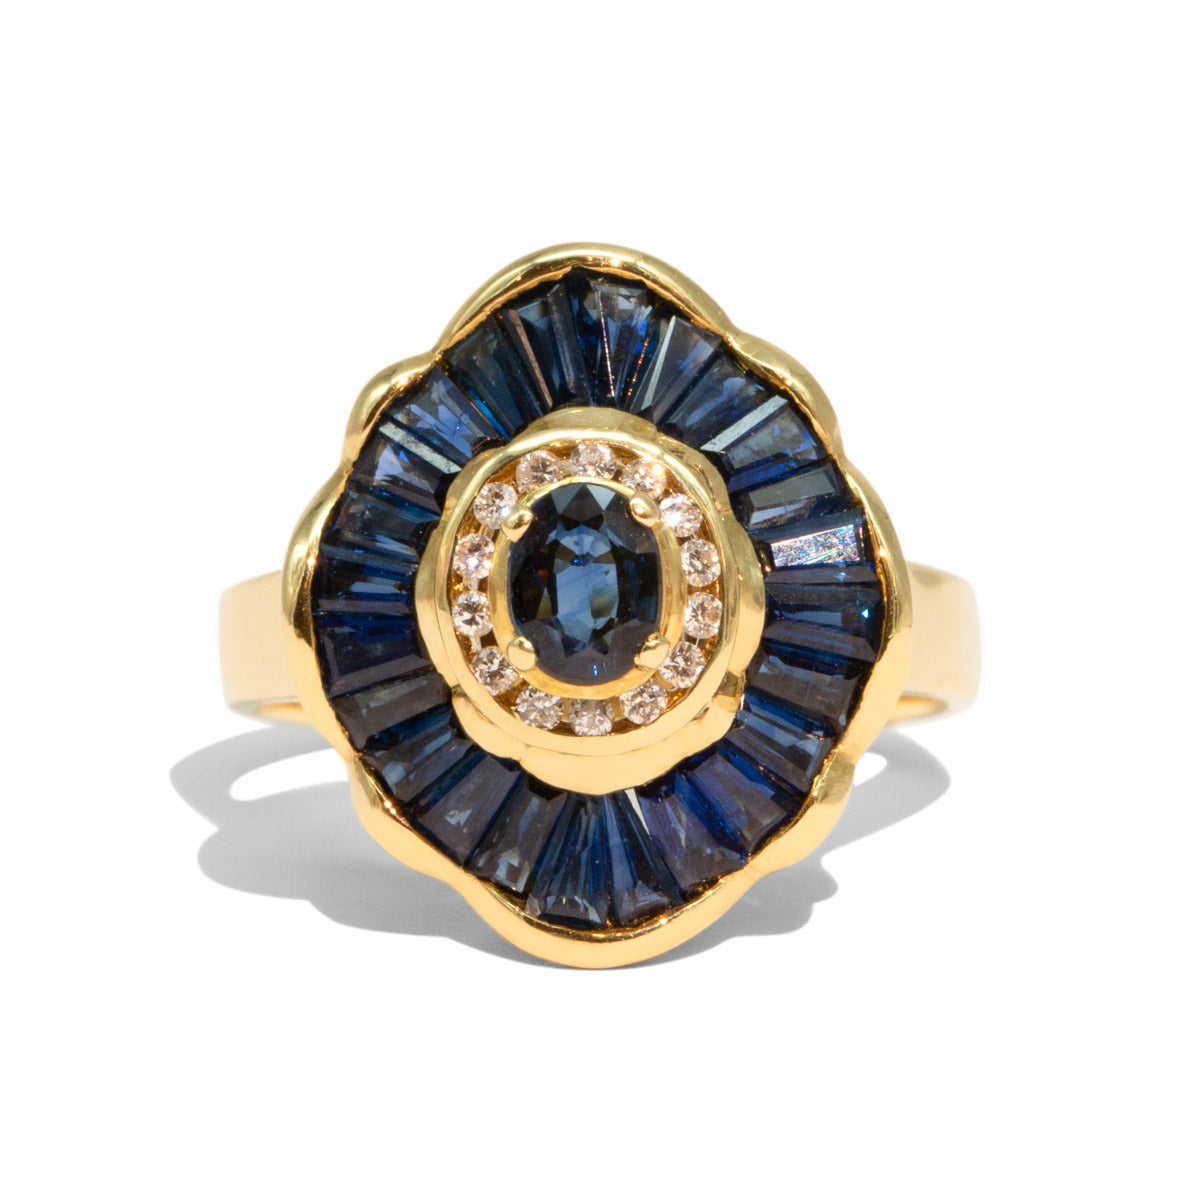 The Camille Vintage Sapphire & Diamond Ring